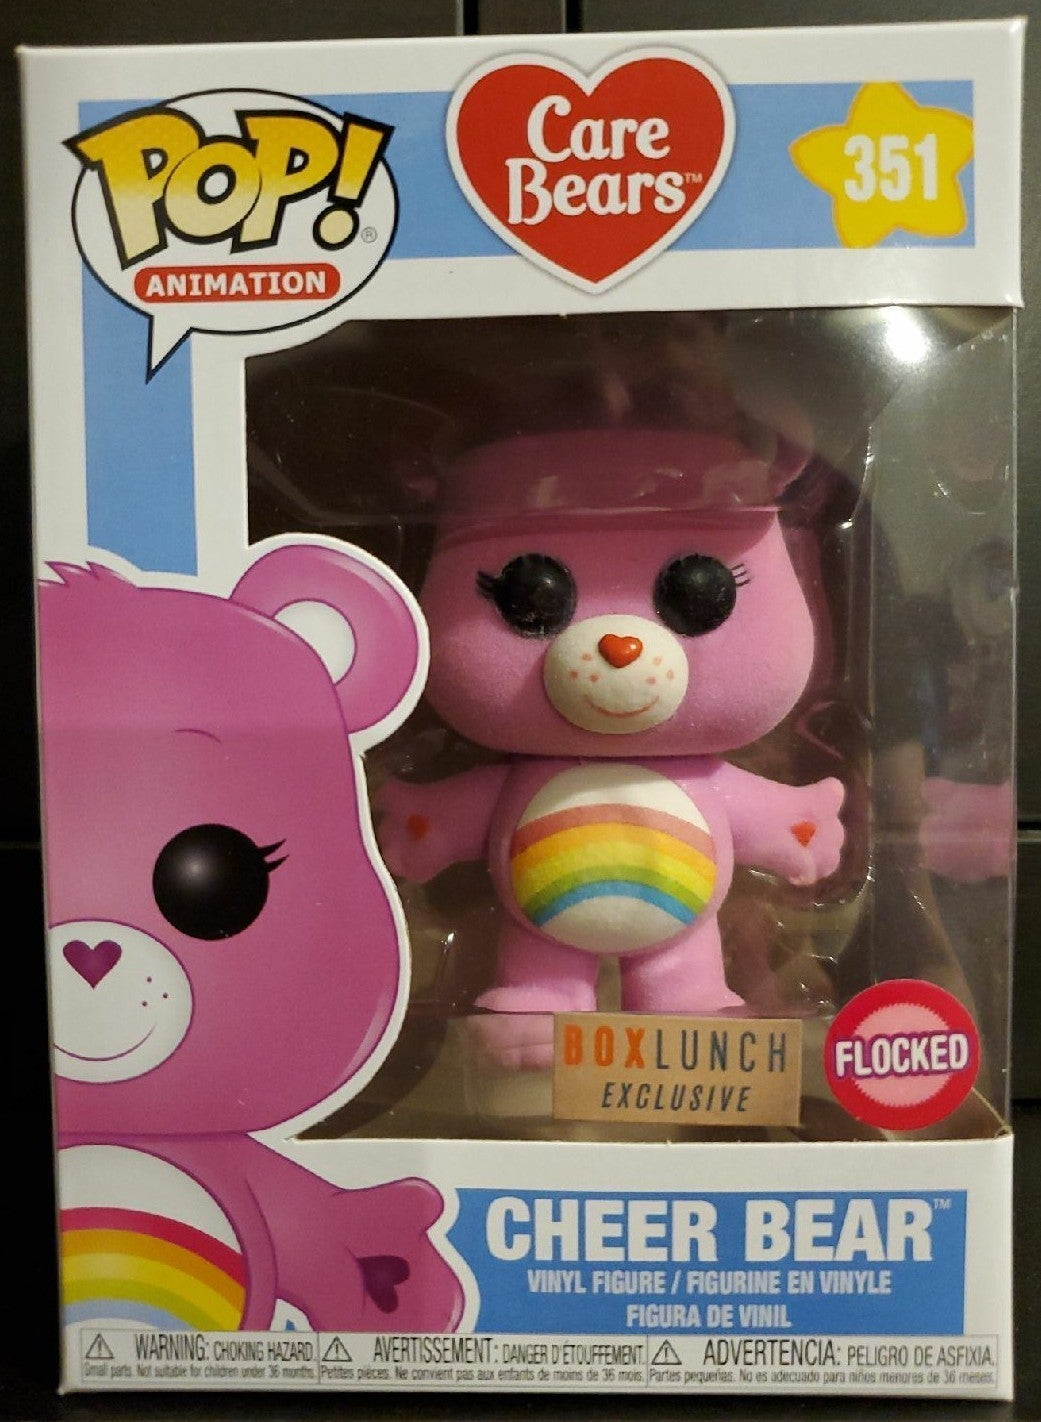 Pop #351 Care Bears Cheer Bear flocked